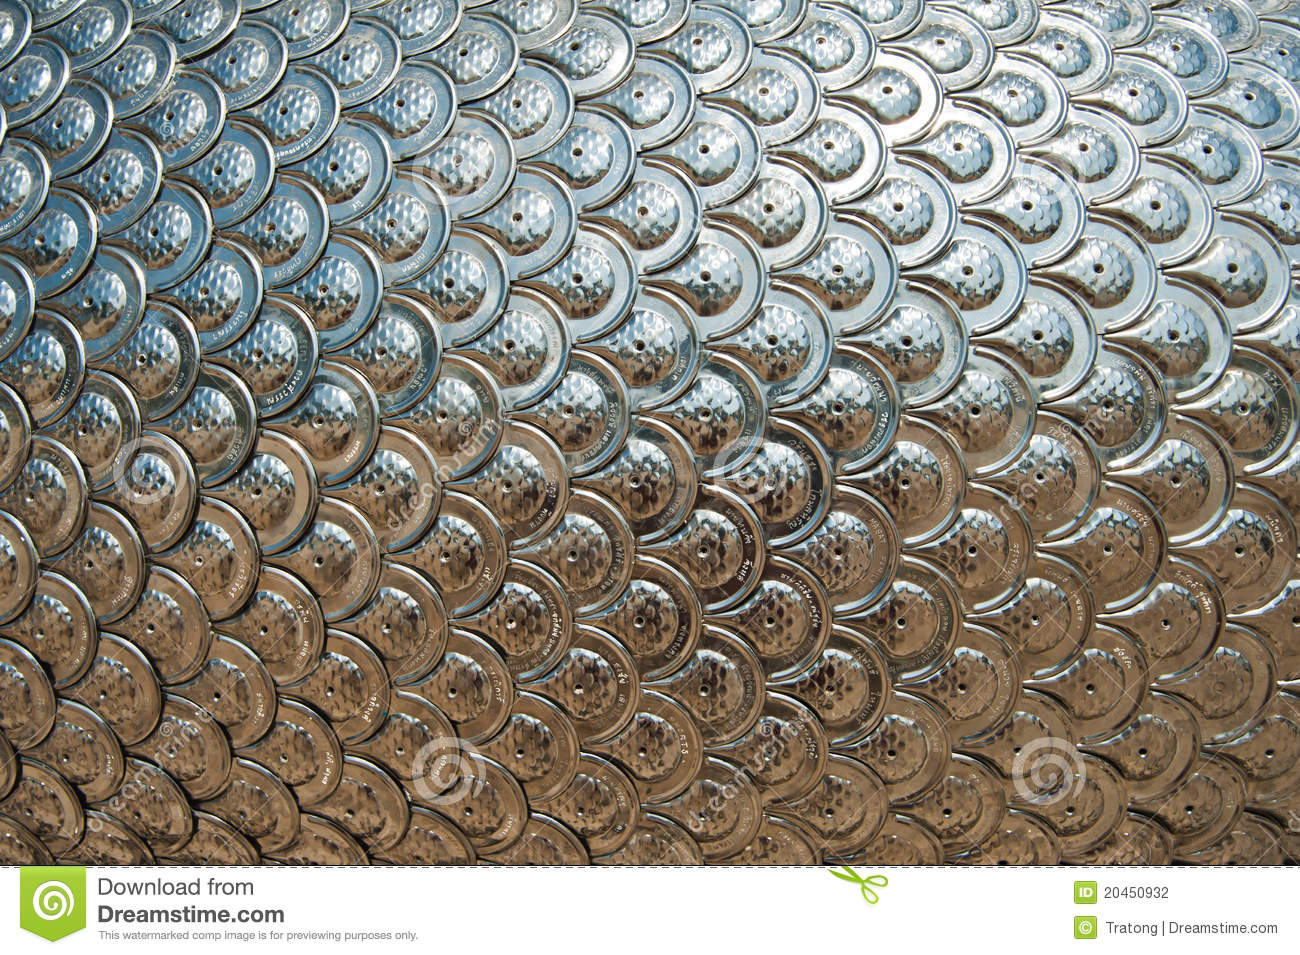 Nadoubledogtg likewise Egnr also Fizelyite likewise Arrow Button Metal Silver Left further Texture Silver Dragon Scales. on silver symbol